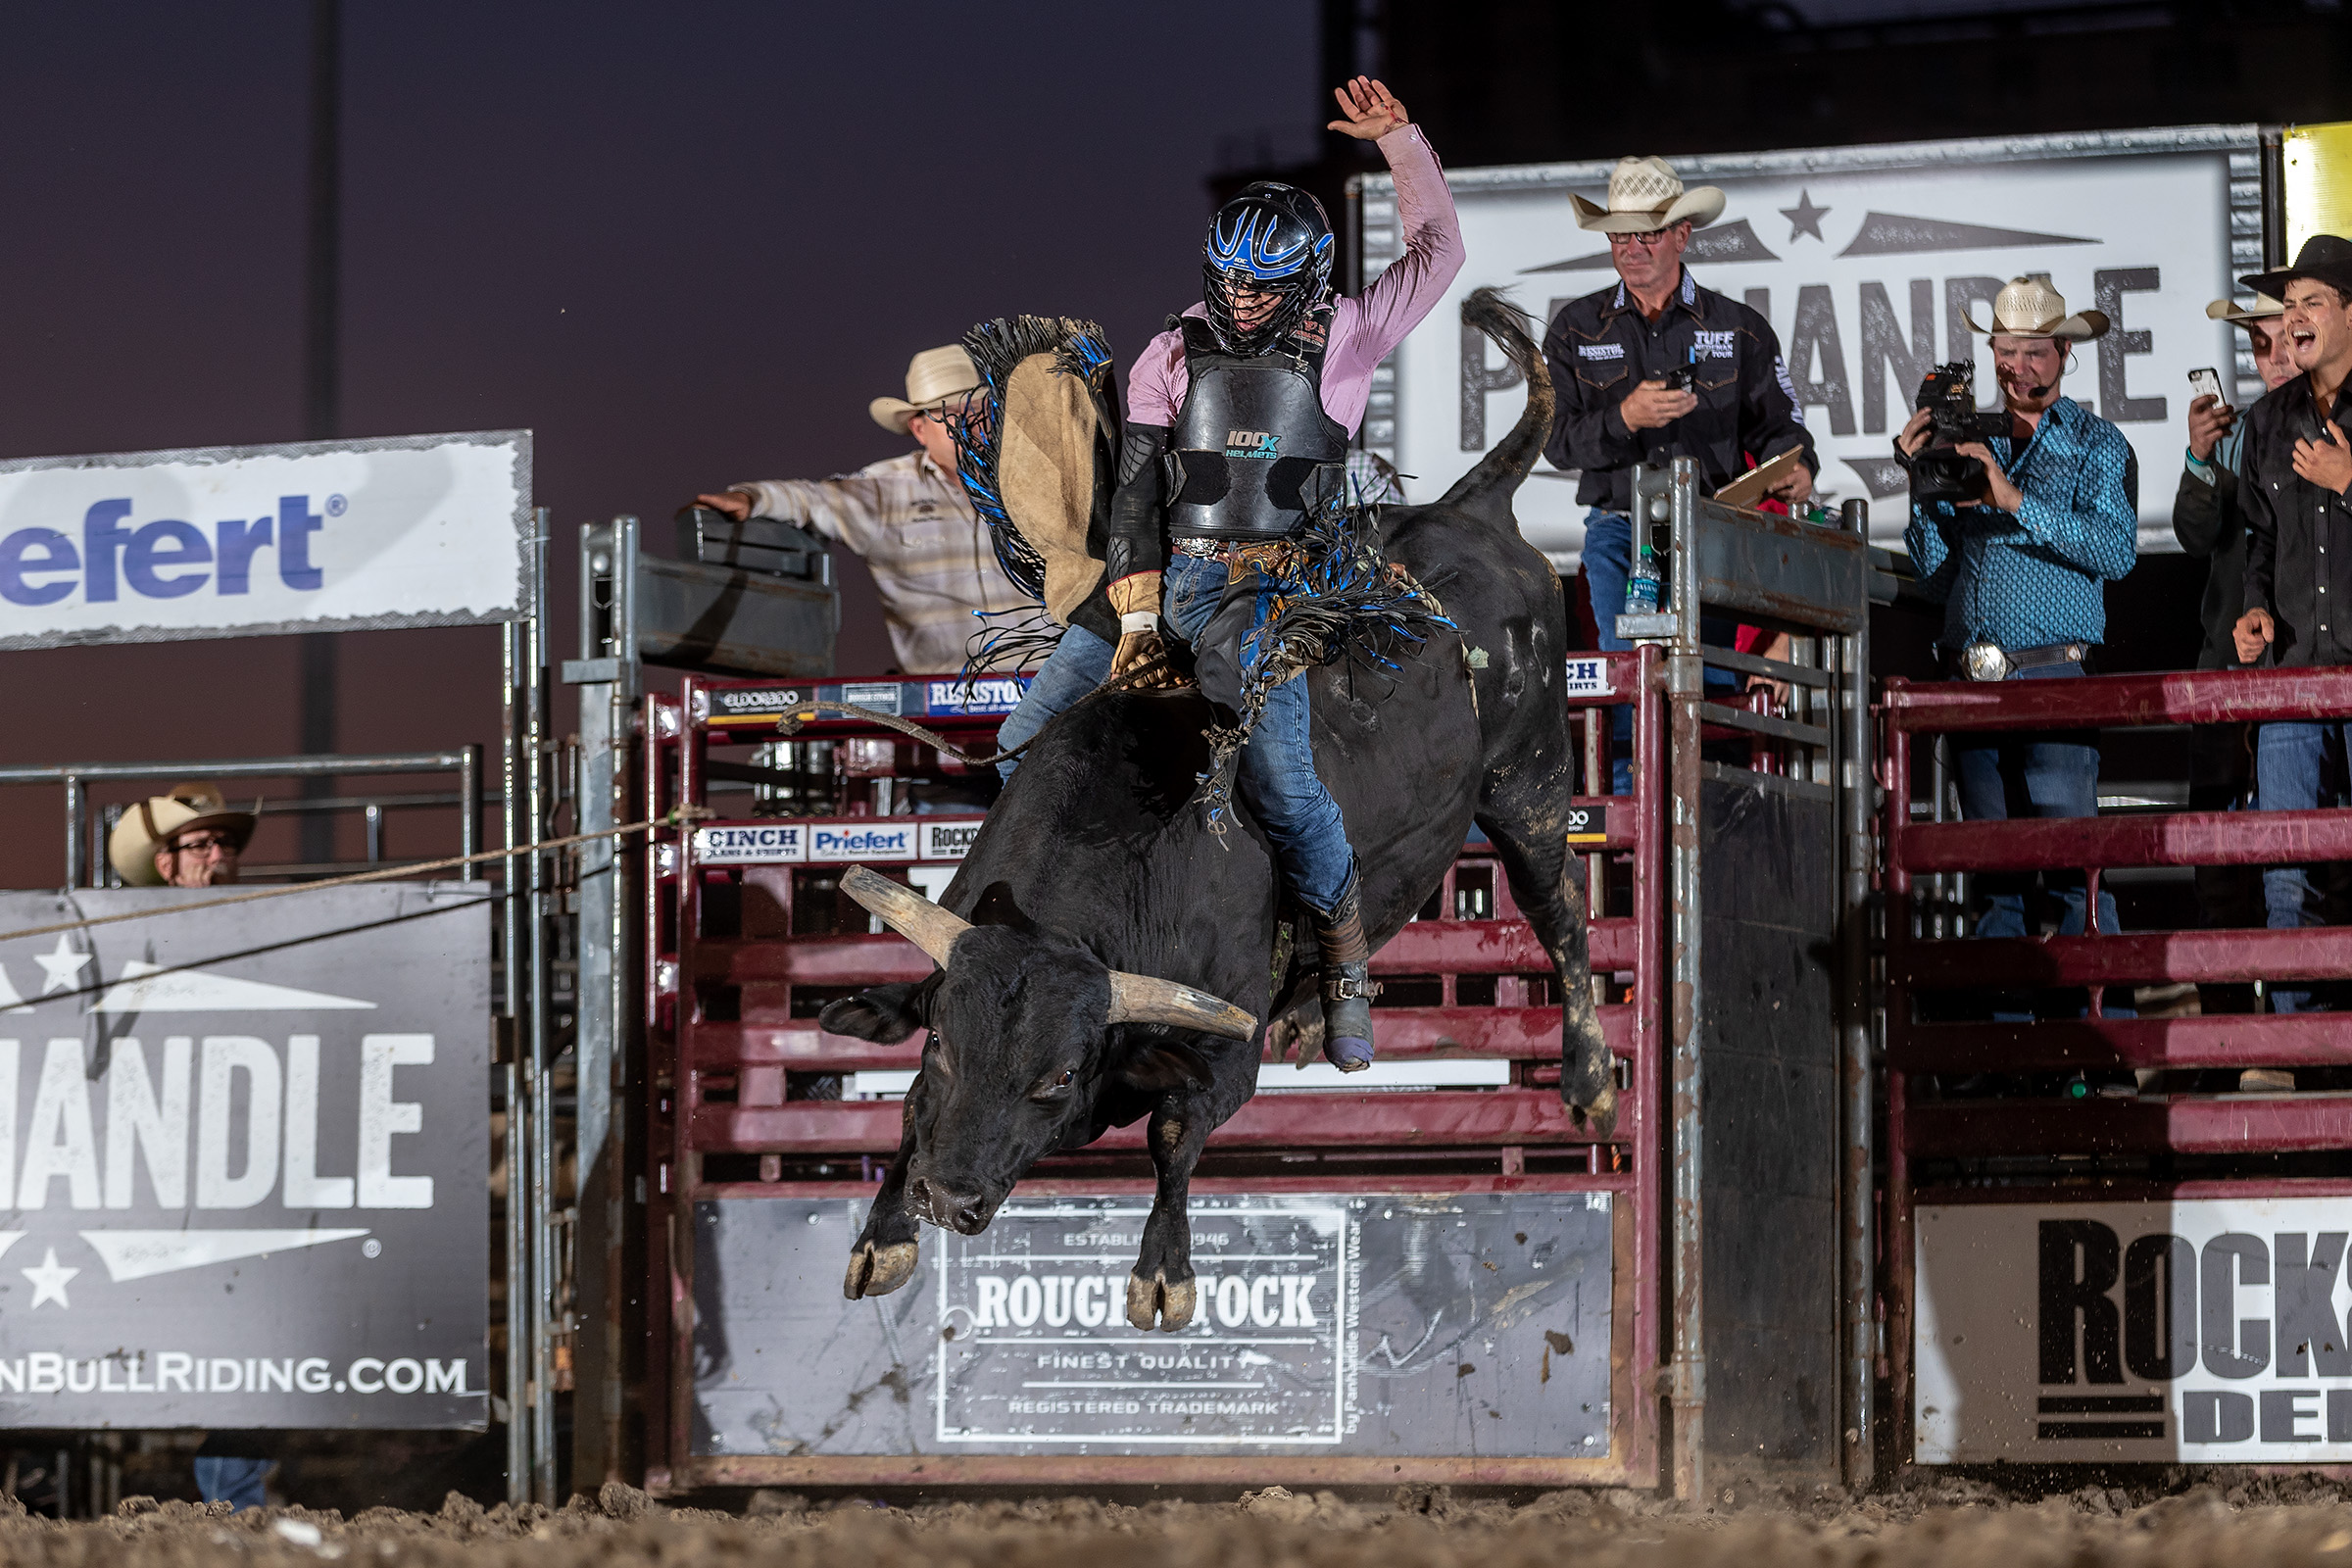 Javier Garcia wins night one of the Bull Bash in Huron with a 91 point ride on C415 Rag Doll (Baker).